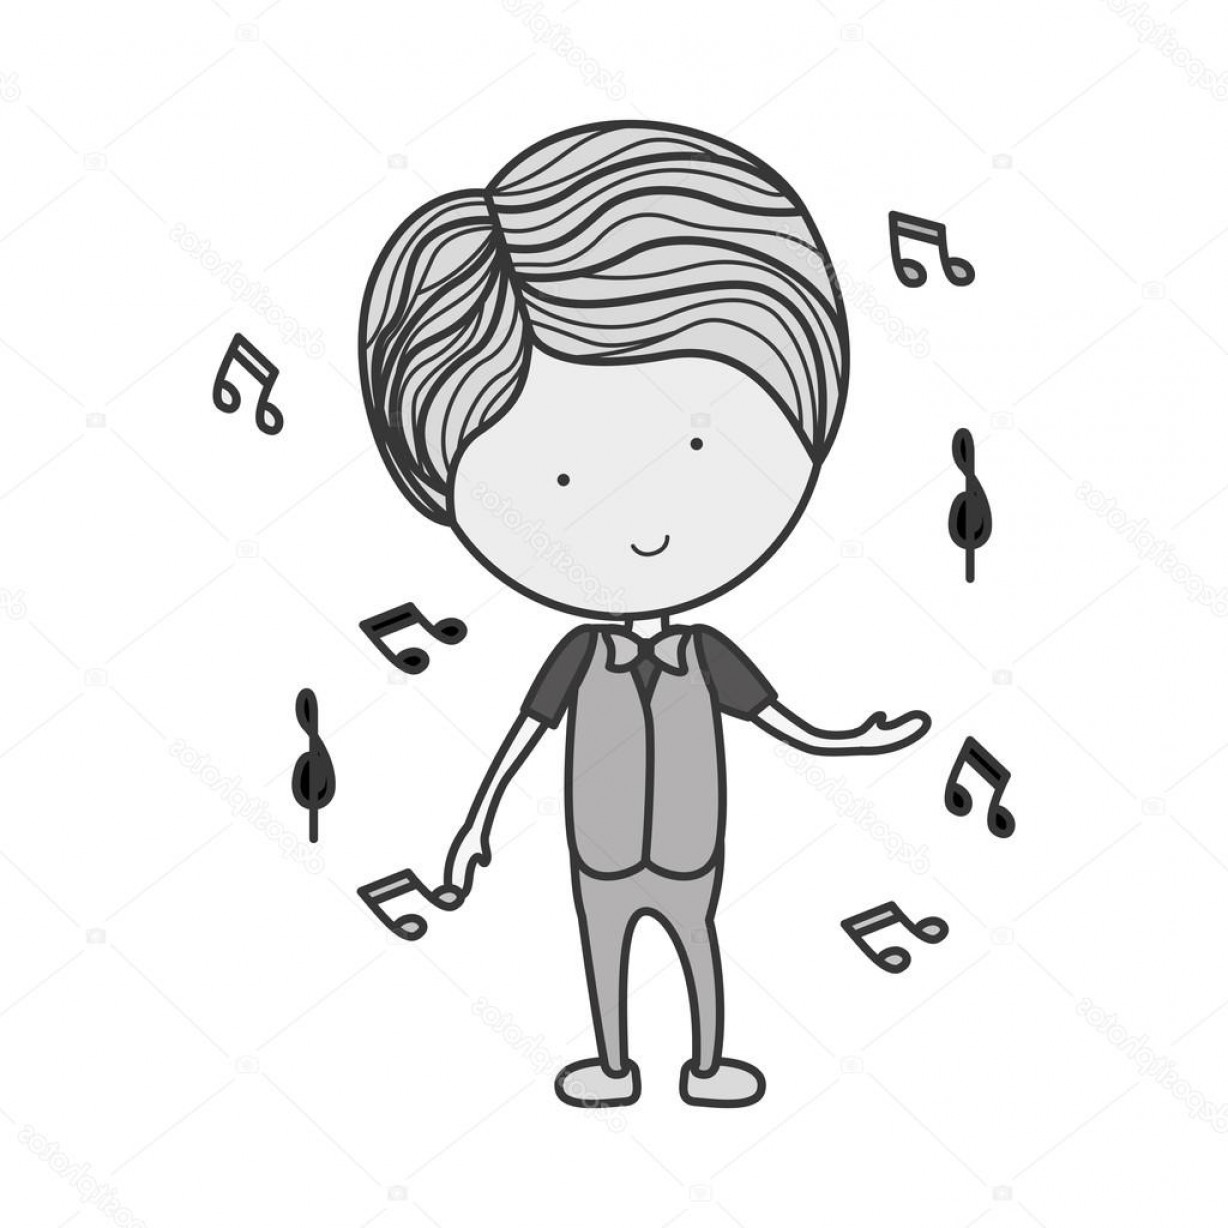 Dancing Musical Notes Vector: Stock Illustration Silhouette Man Dancing With Musical